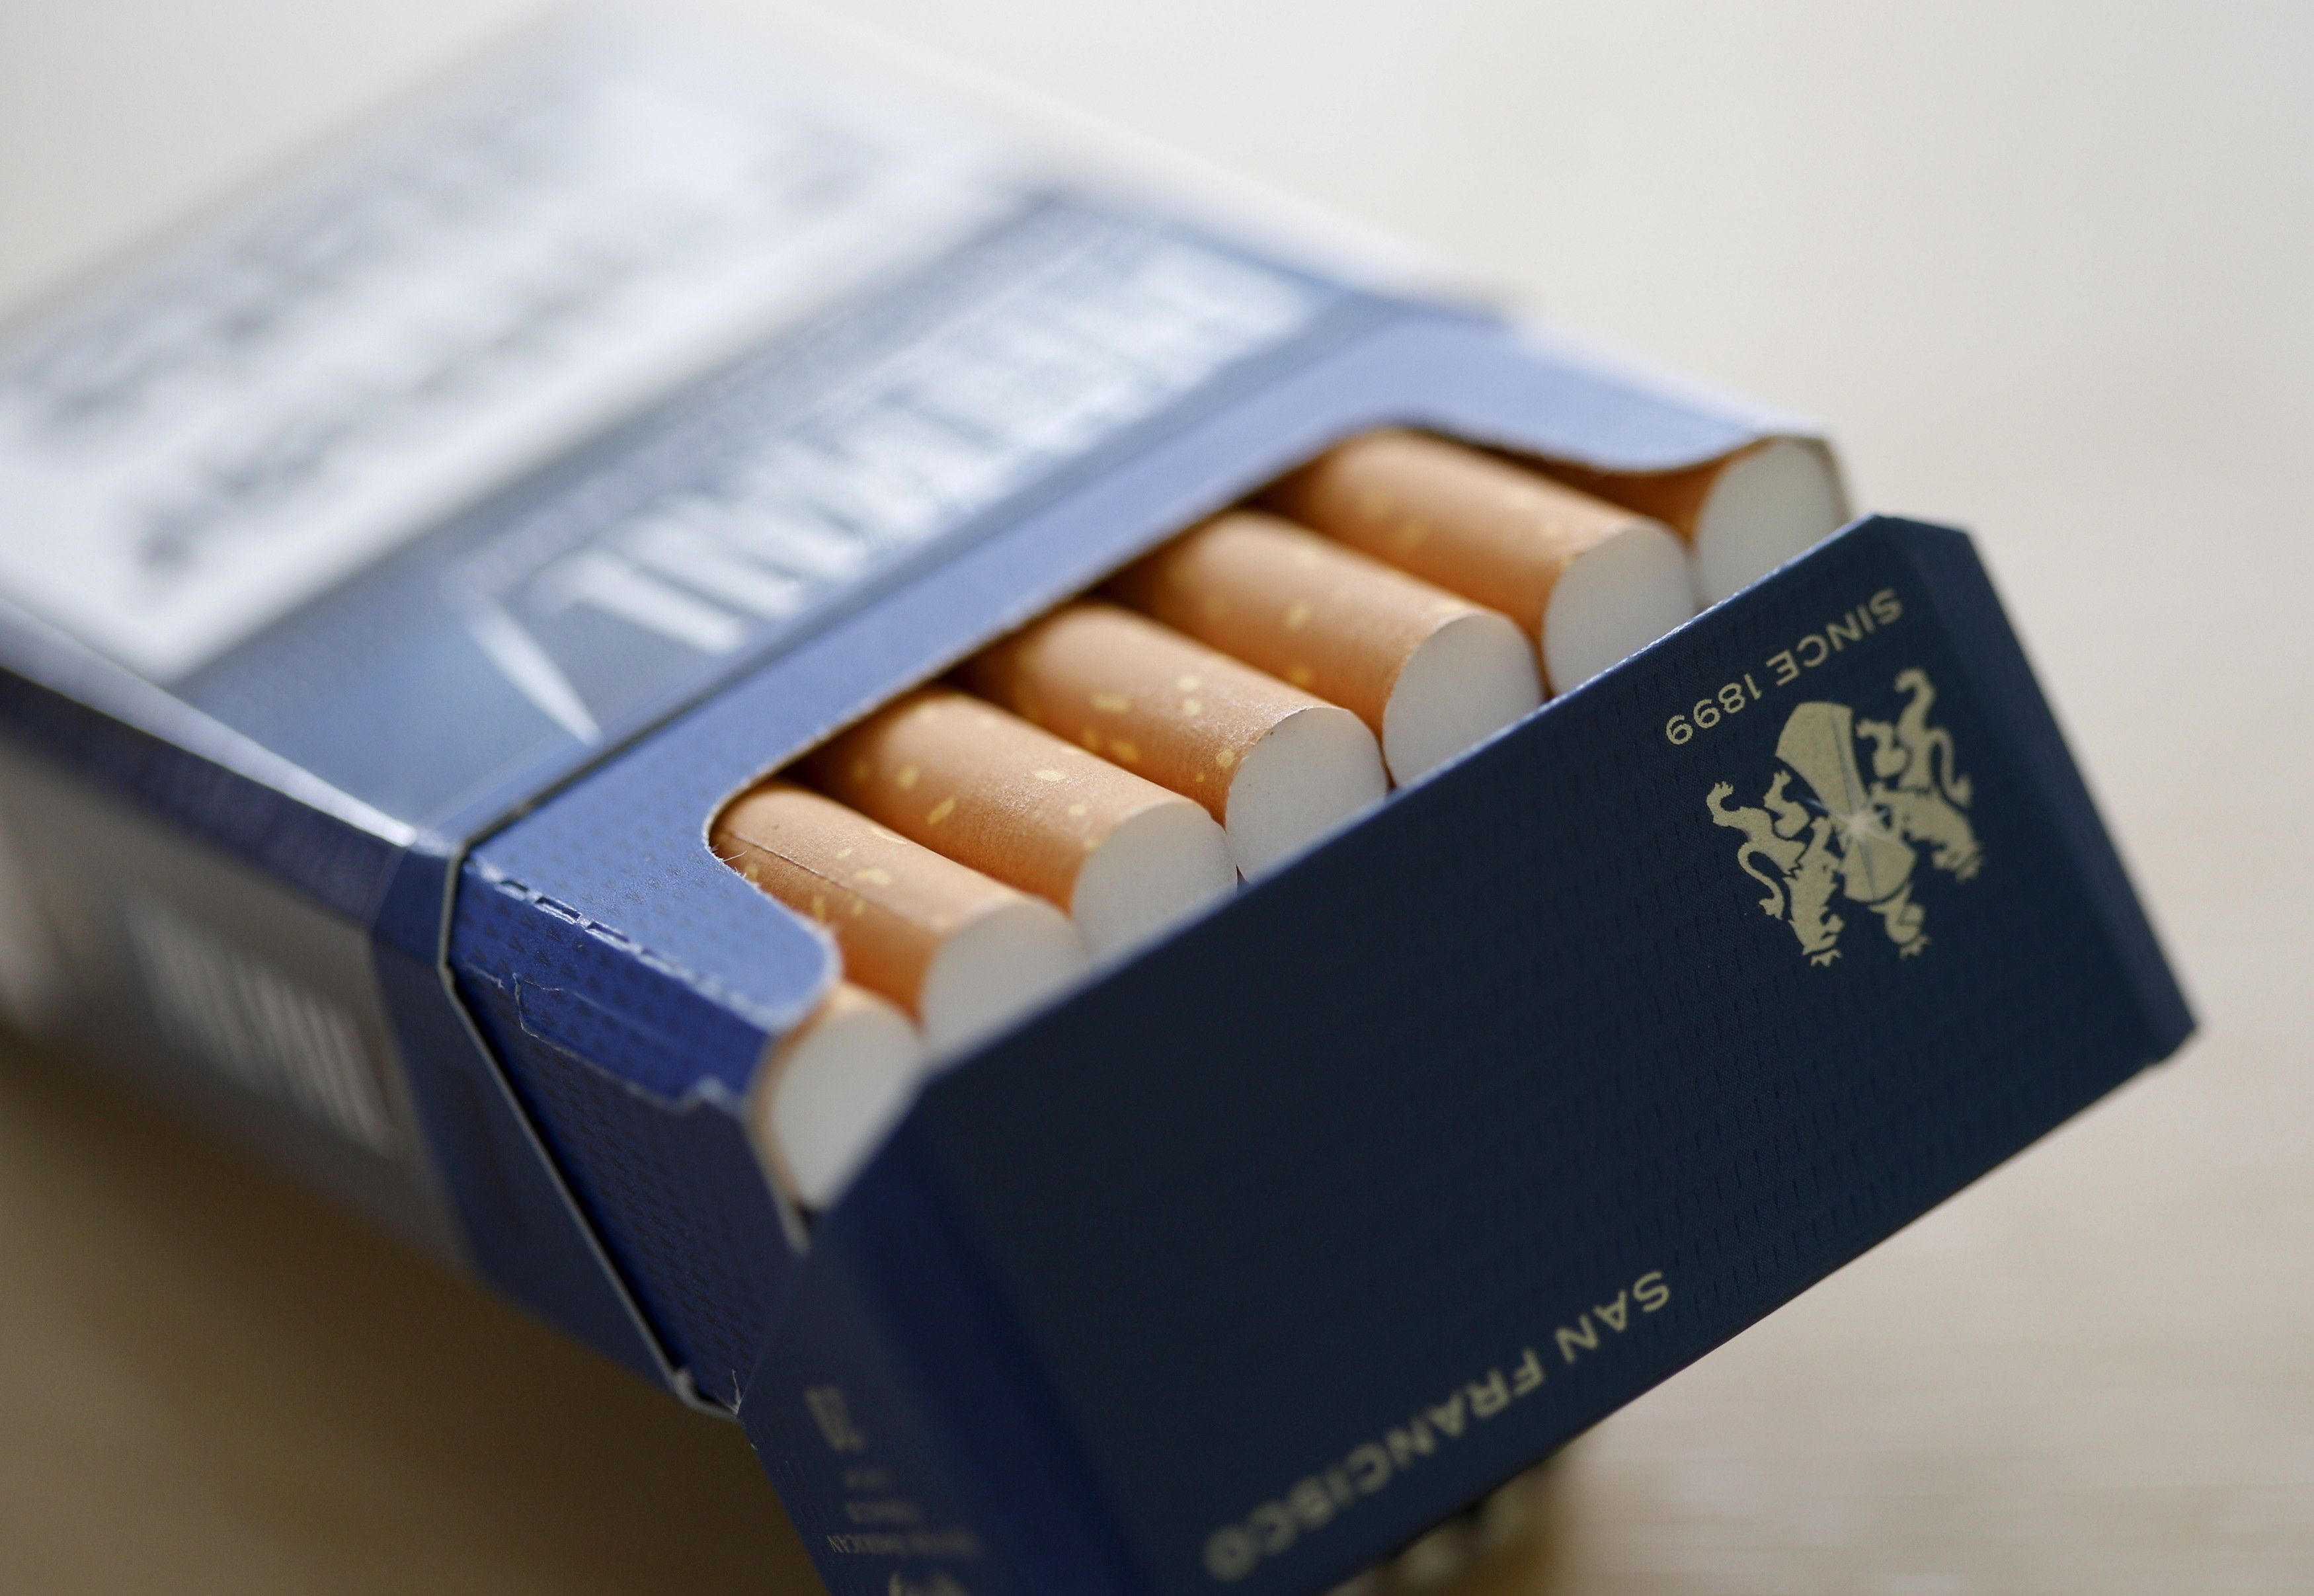 Pall Mall cigarettes are seen after the manufacturing process in the British American Tobacco Cigarette Factory (BAT) in Bayreuth, southern Germany, April 30, 2014.   REUTERS/Michaela Rehle/File Photo         GLOBAL BUSINESS WEEK AHEAD PACKAGE - SEARCH 'BUSINESS WEEK AHEAD APRIL 25'  FOR ALL IMAGES